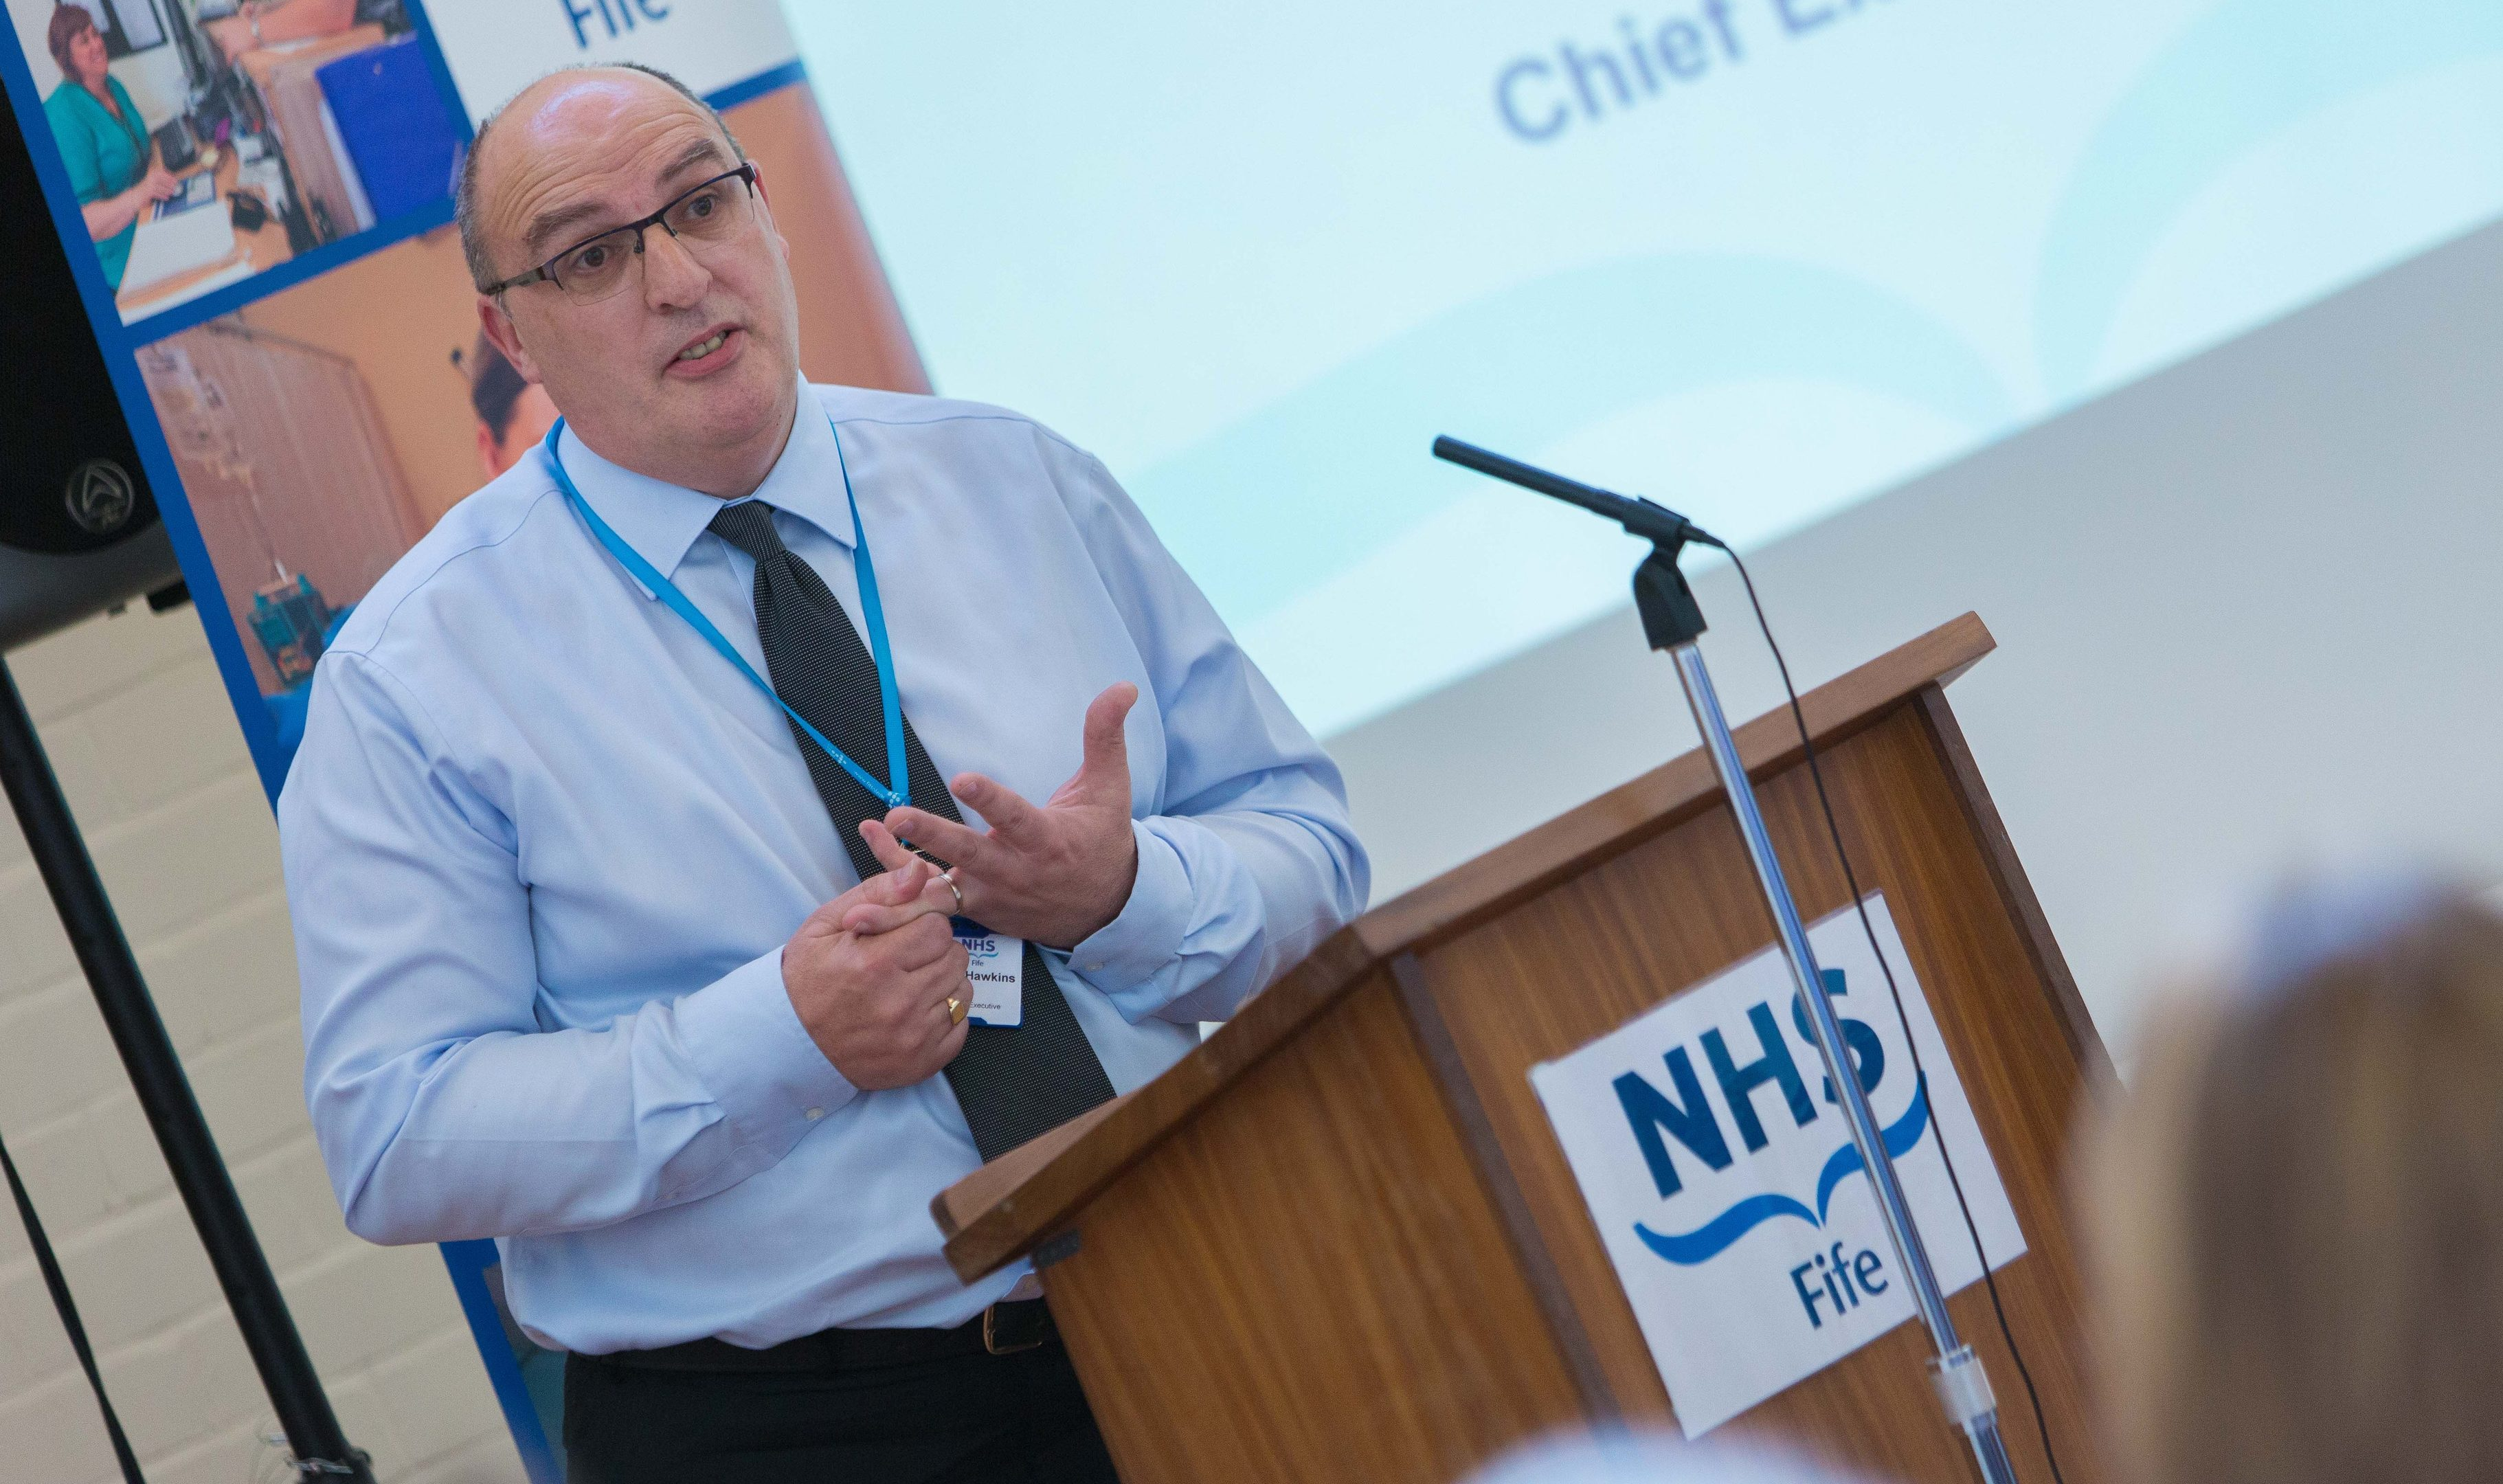 NHS Fife chief executive Paul Hawkins will lead NHS Highland